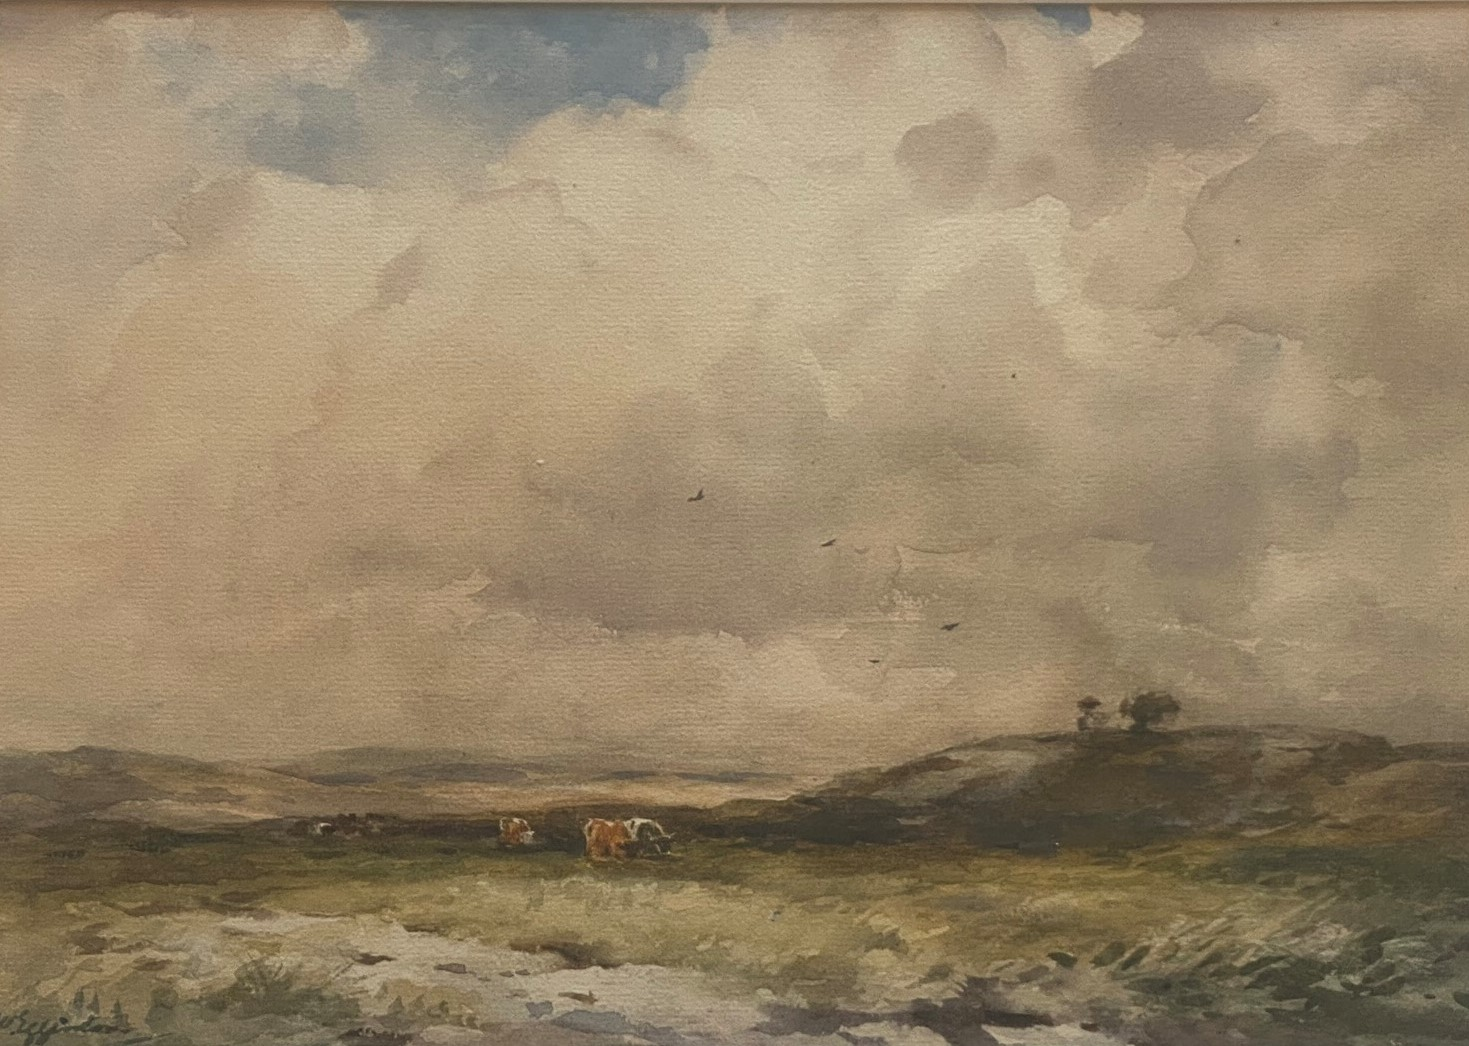 Lot 50 - Original Signed Watercolour. Wycliffe Eggington, 1875-1951 - Grazing On The Moor